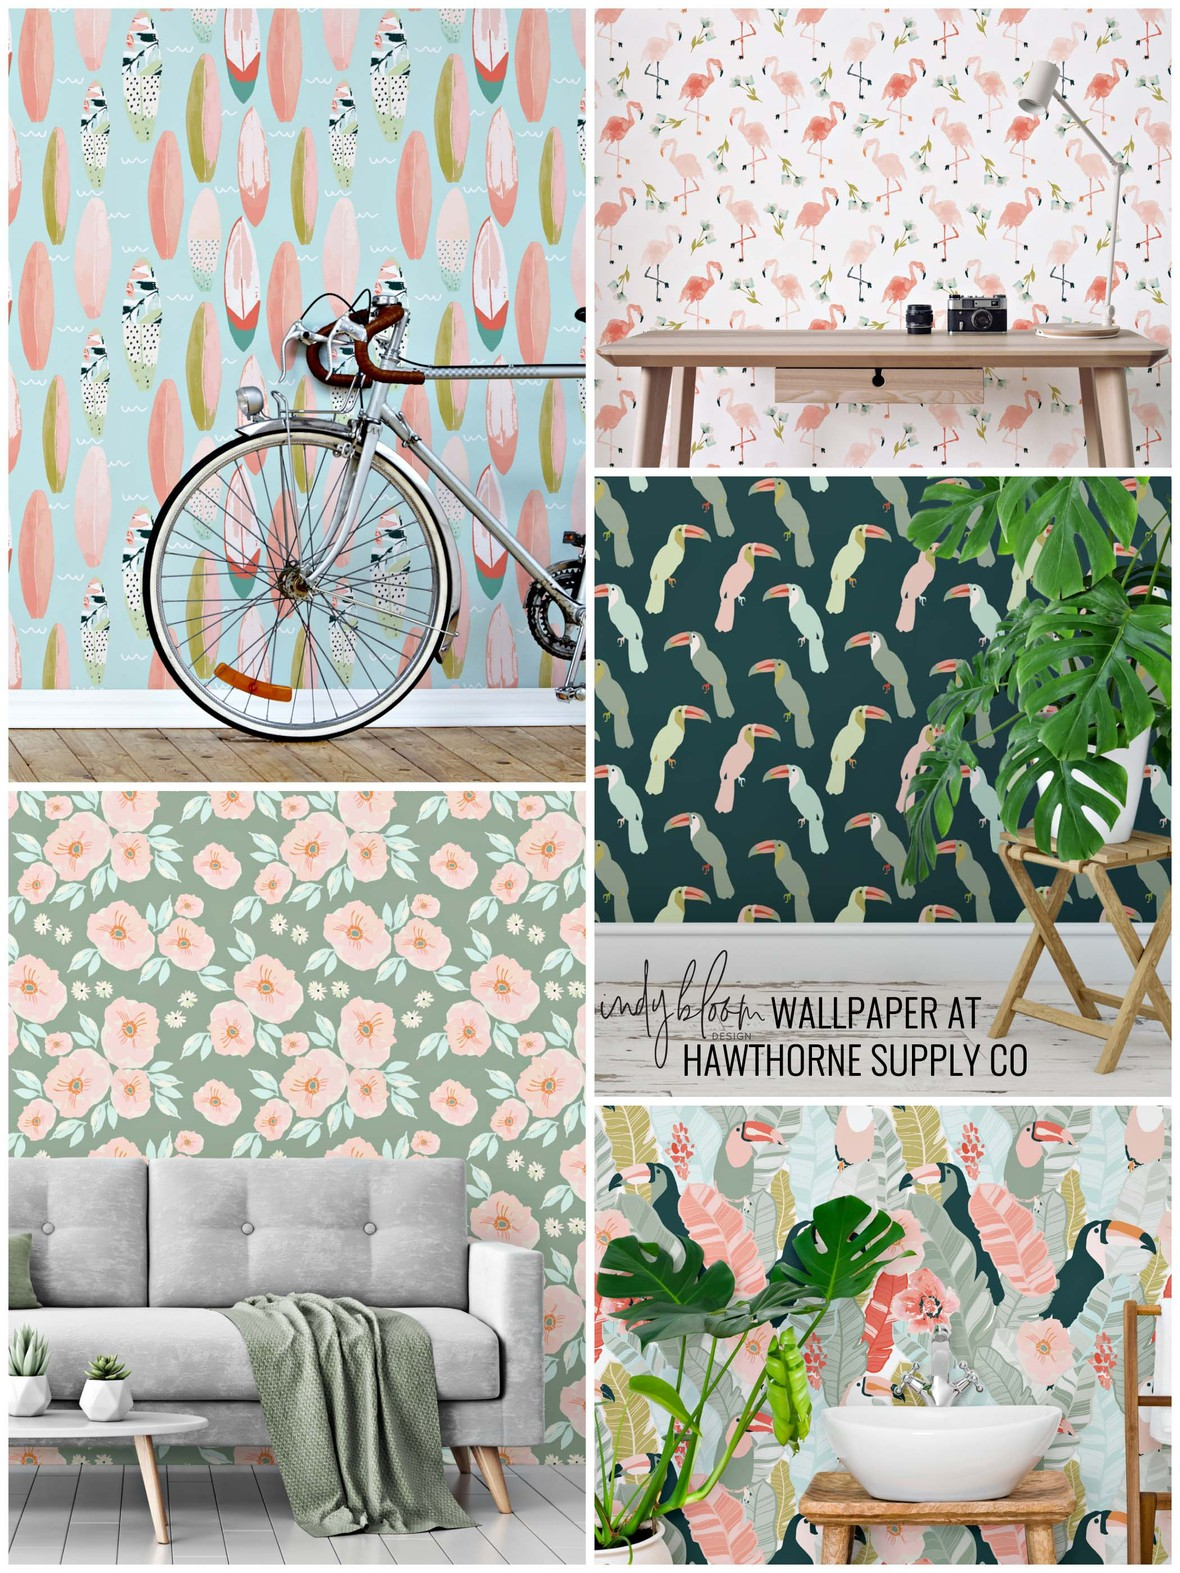 Indy Bloom Paradise Removable Peel and Stick Wallpaper at Hawthorne Supply Co